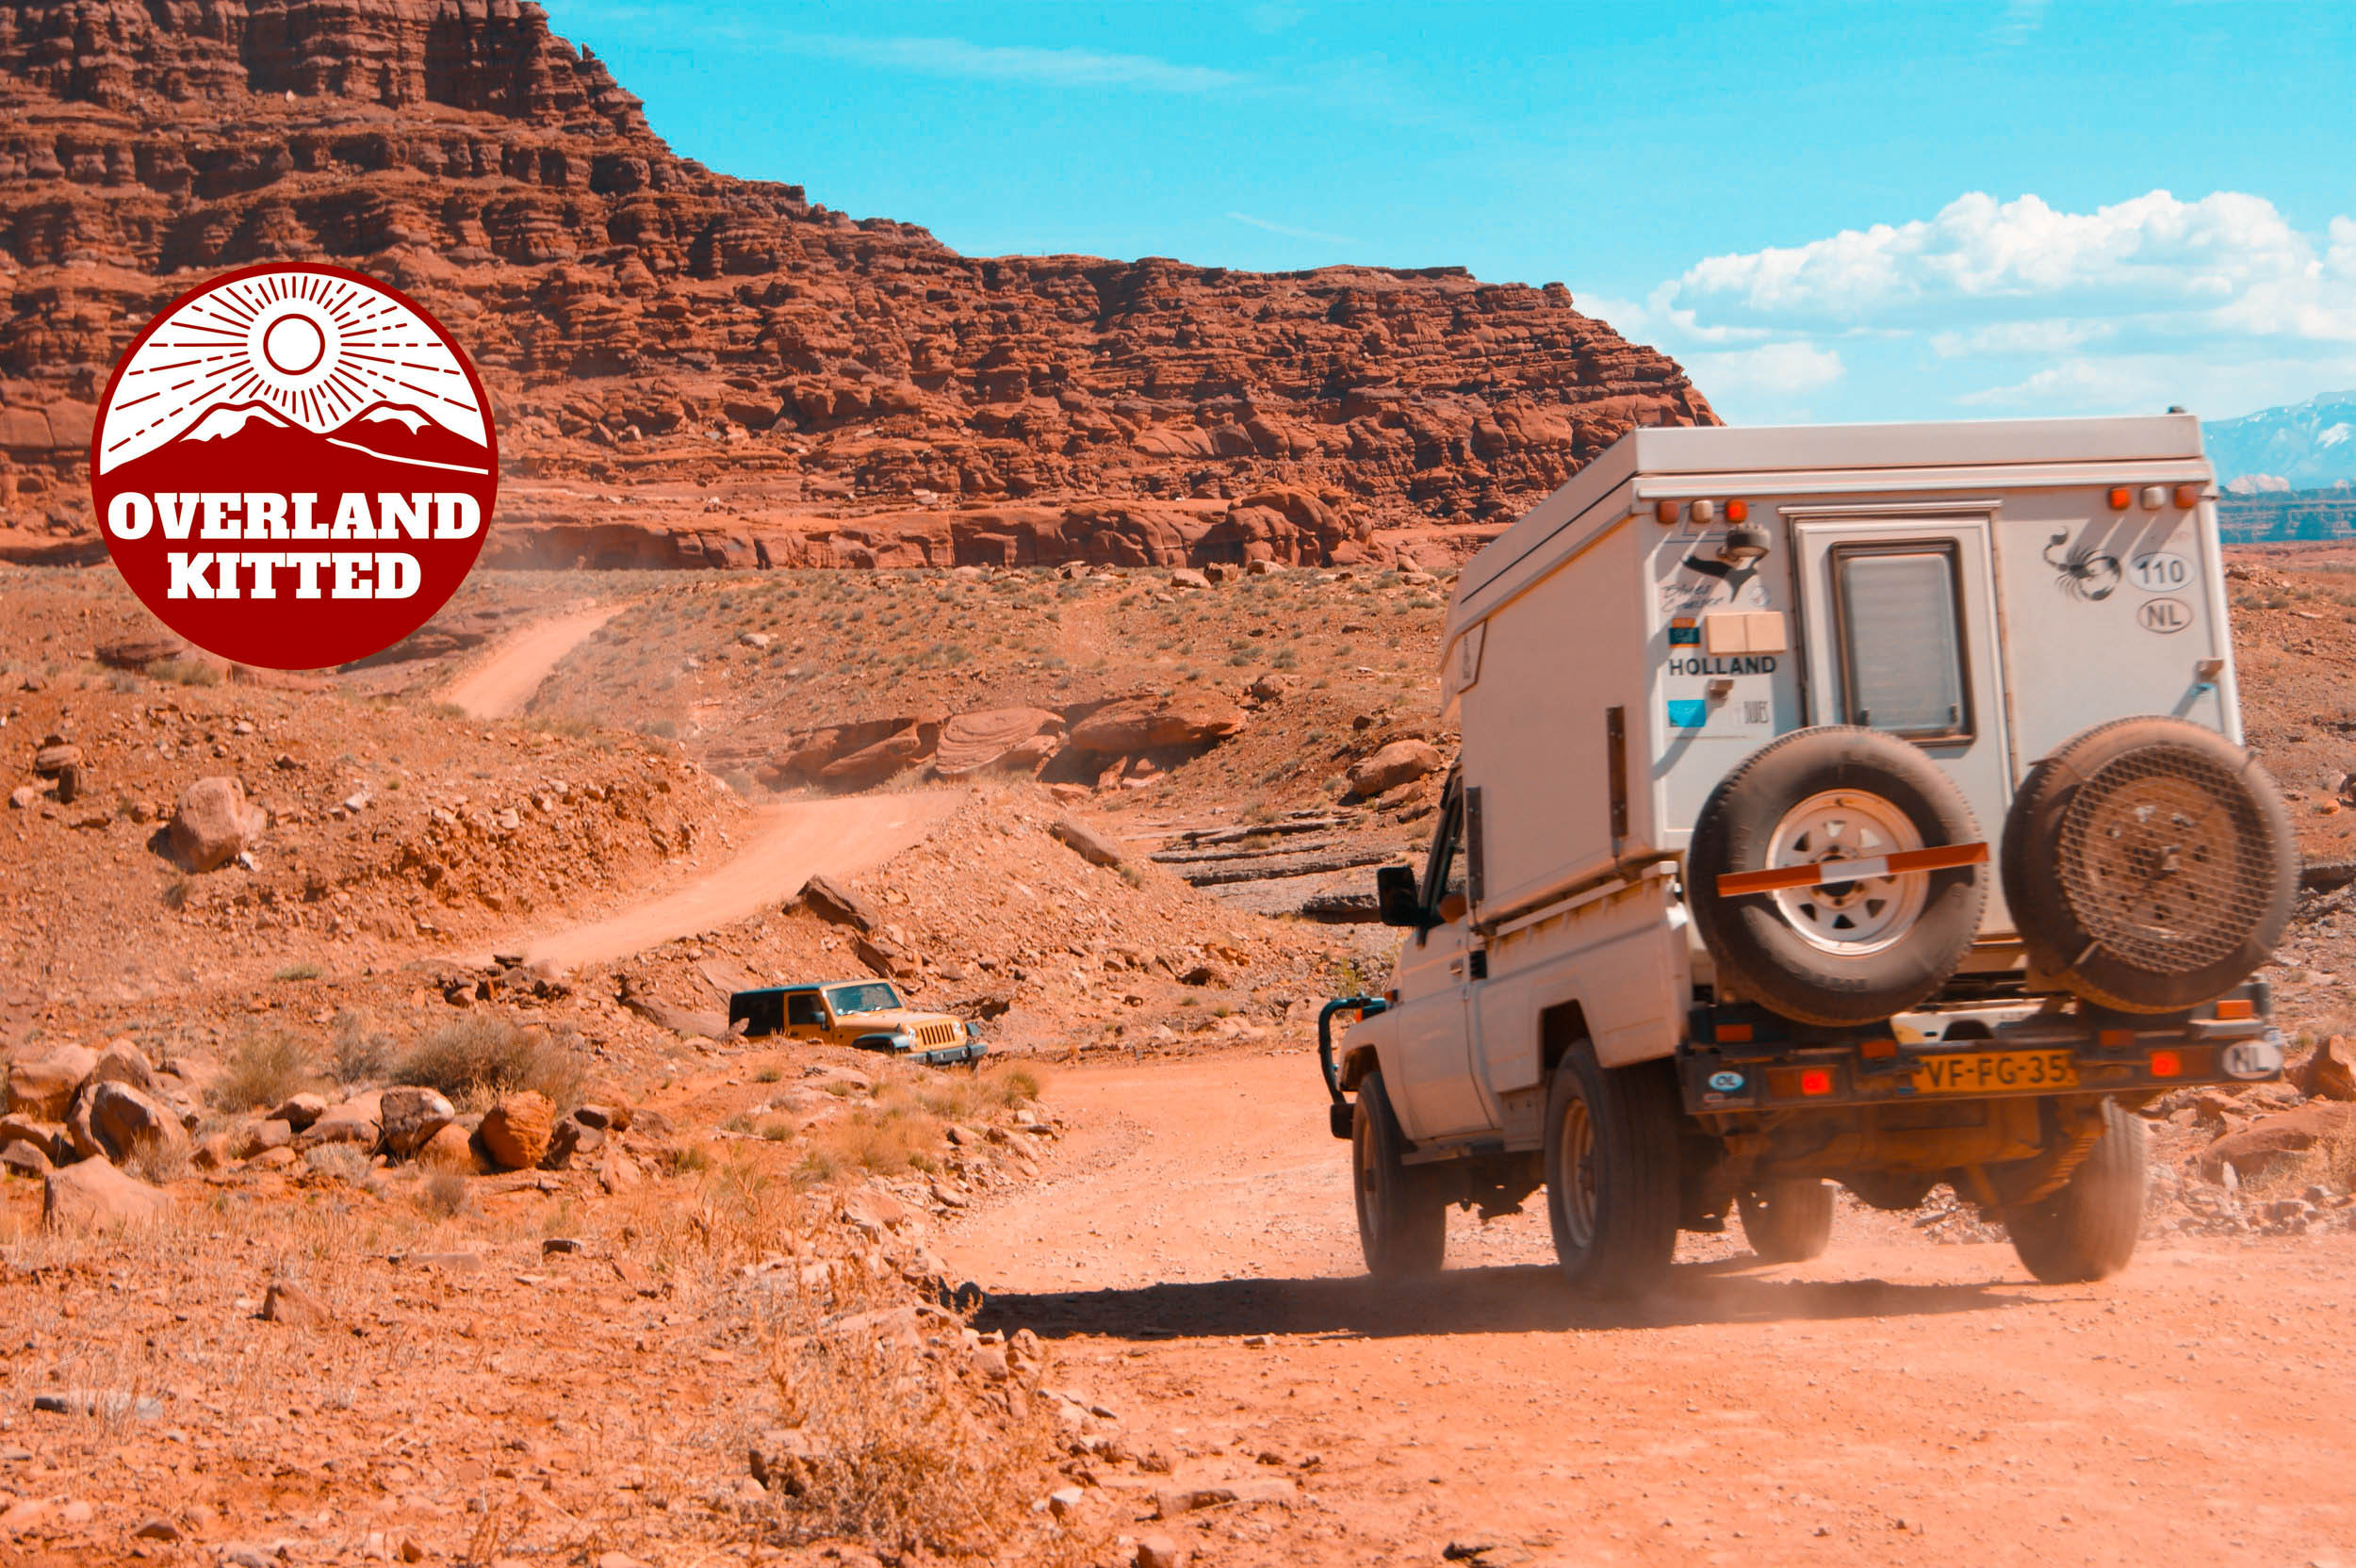 An early model Toyota Hilux passing a late model Jeep JK on the trail during a multi-continental overland adventure.